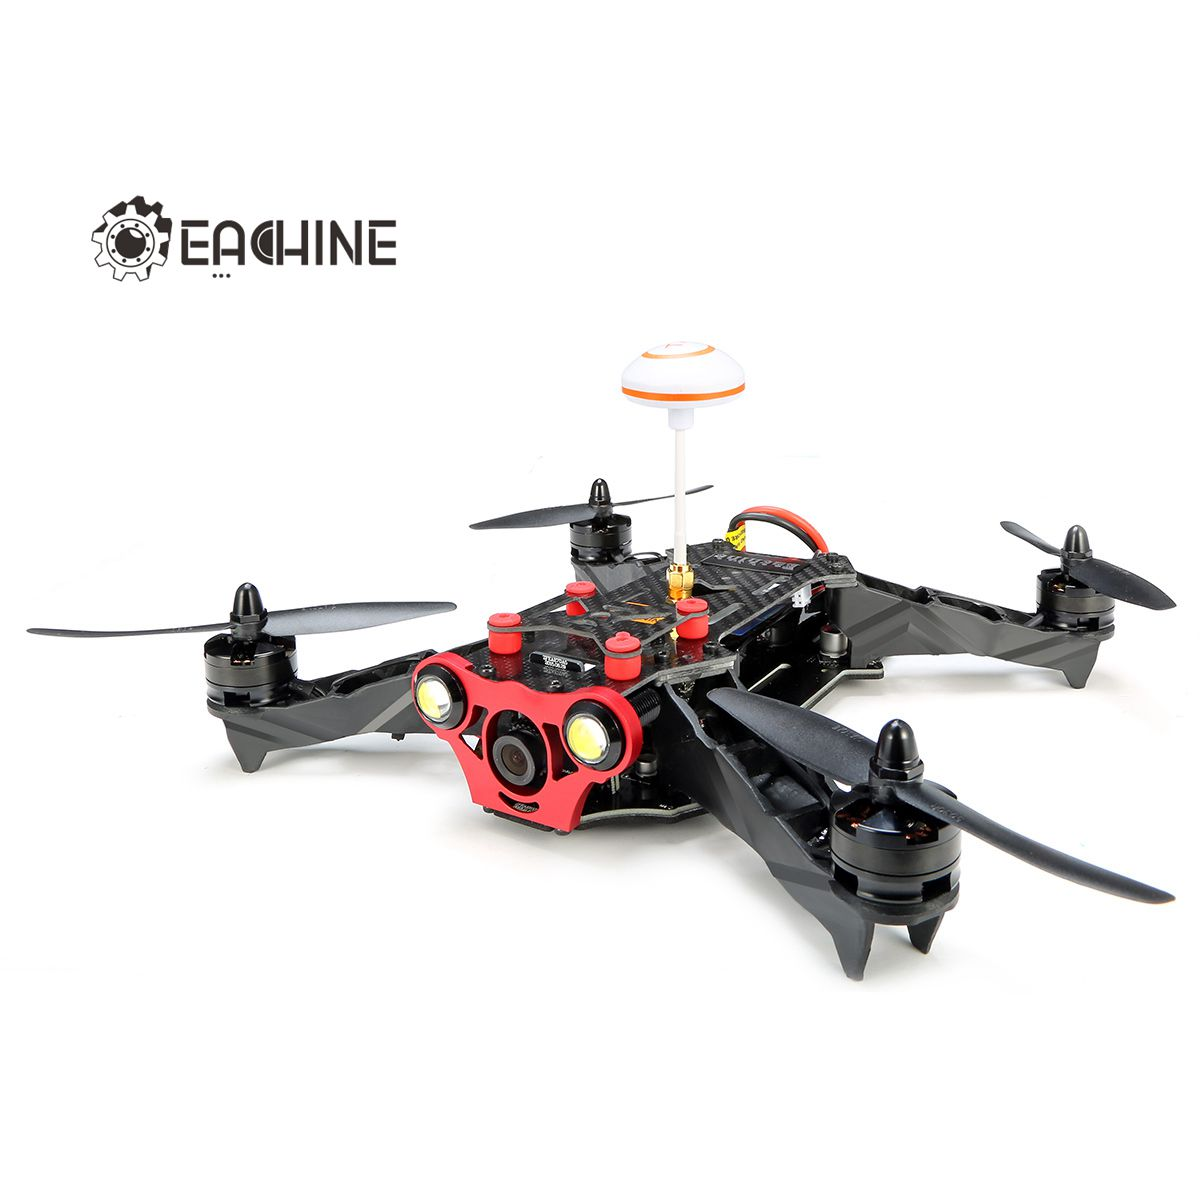 Eachine Racer 250 FPV Drone Built in 5.8G Transmitter OSD With HD Camera ARF Version diy fpv drone racer 250 arf racing quadrocopter raptor s tower f3 fc built in 5 8g transmitter osd flysky fs i6 with hd camera